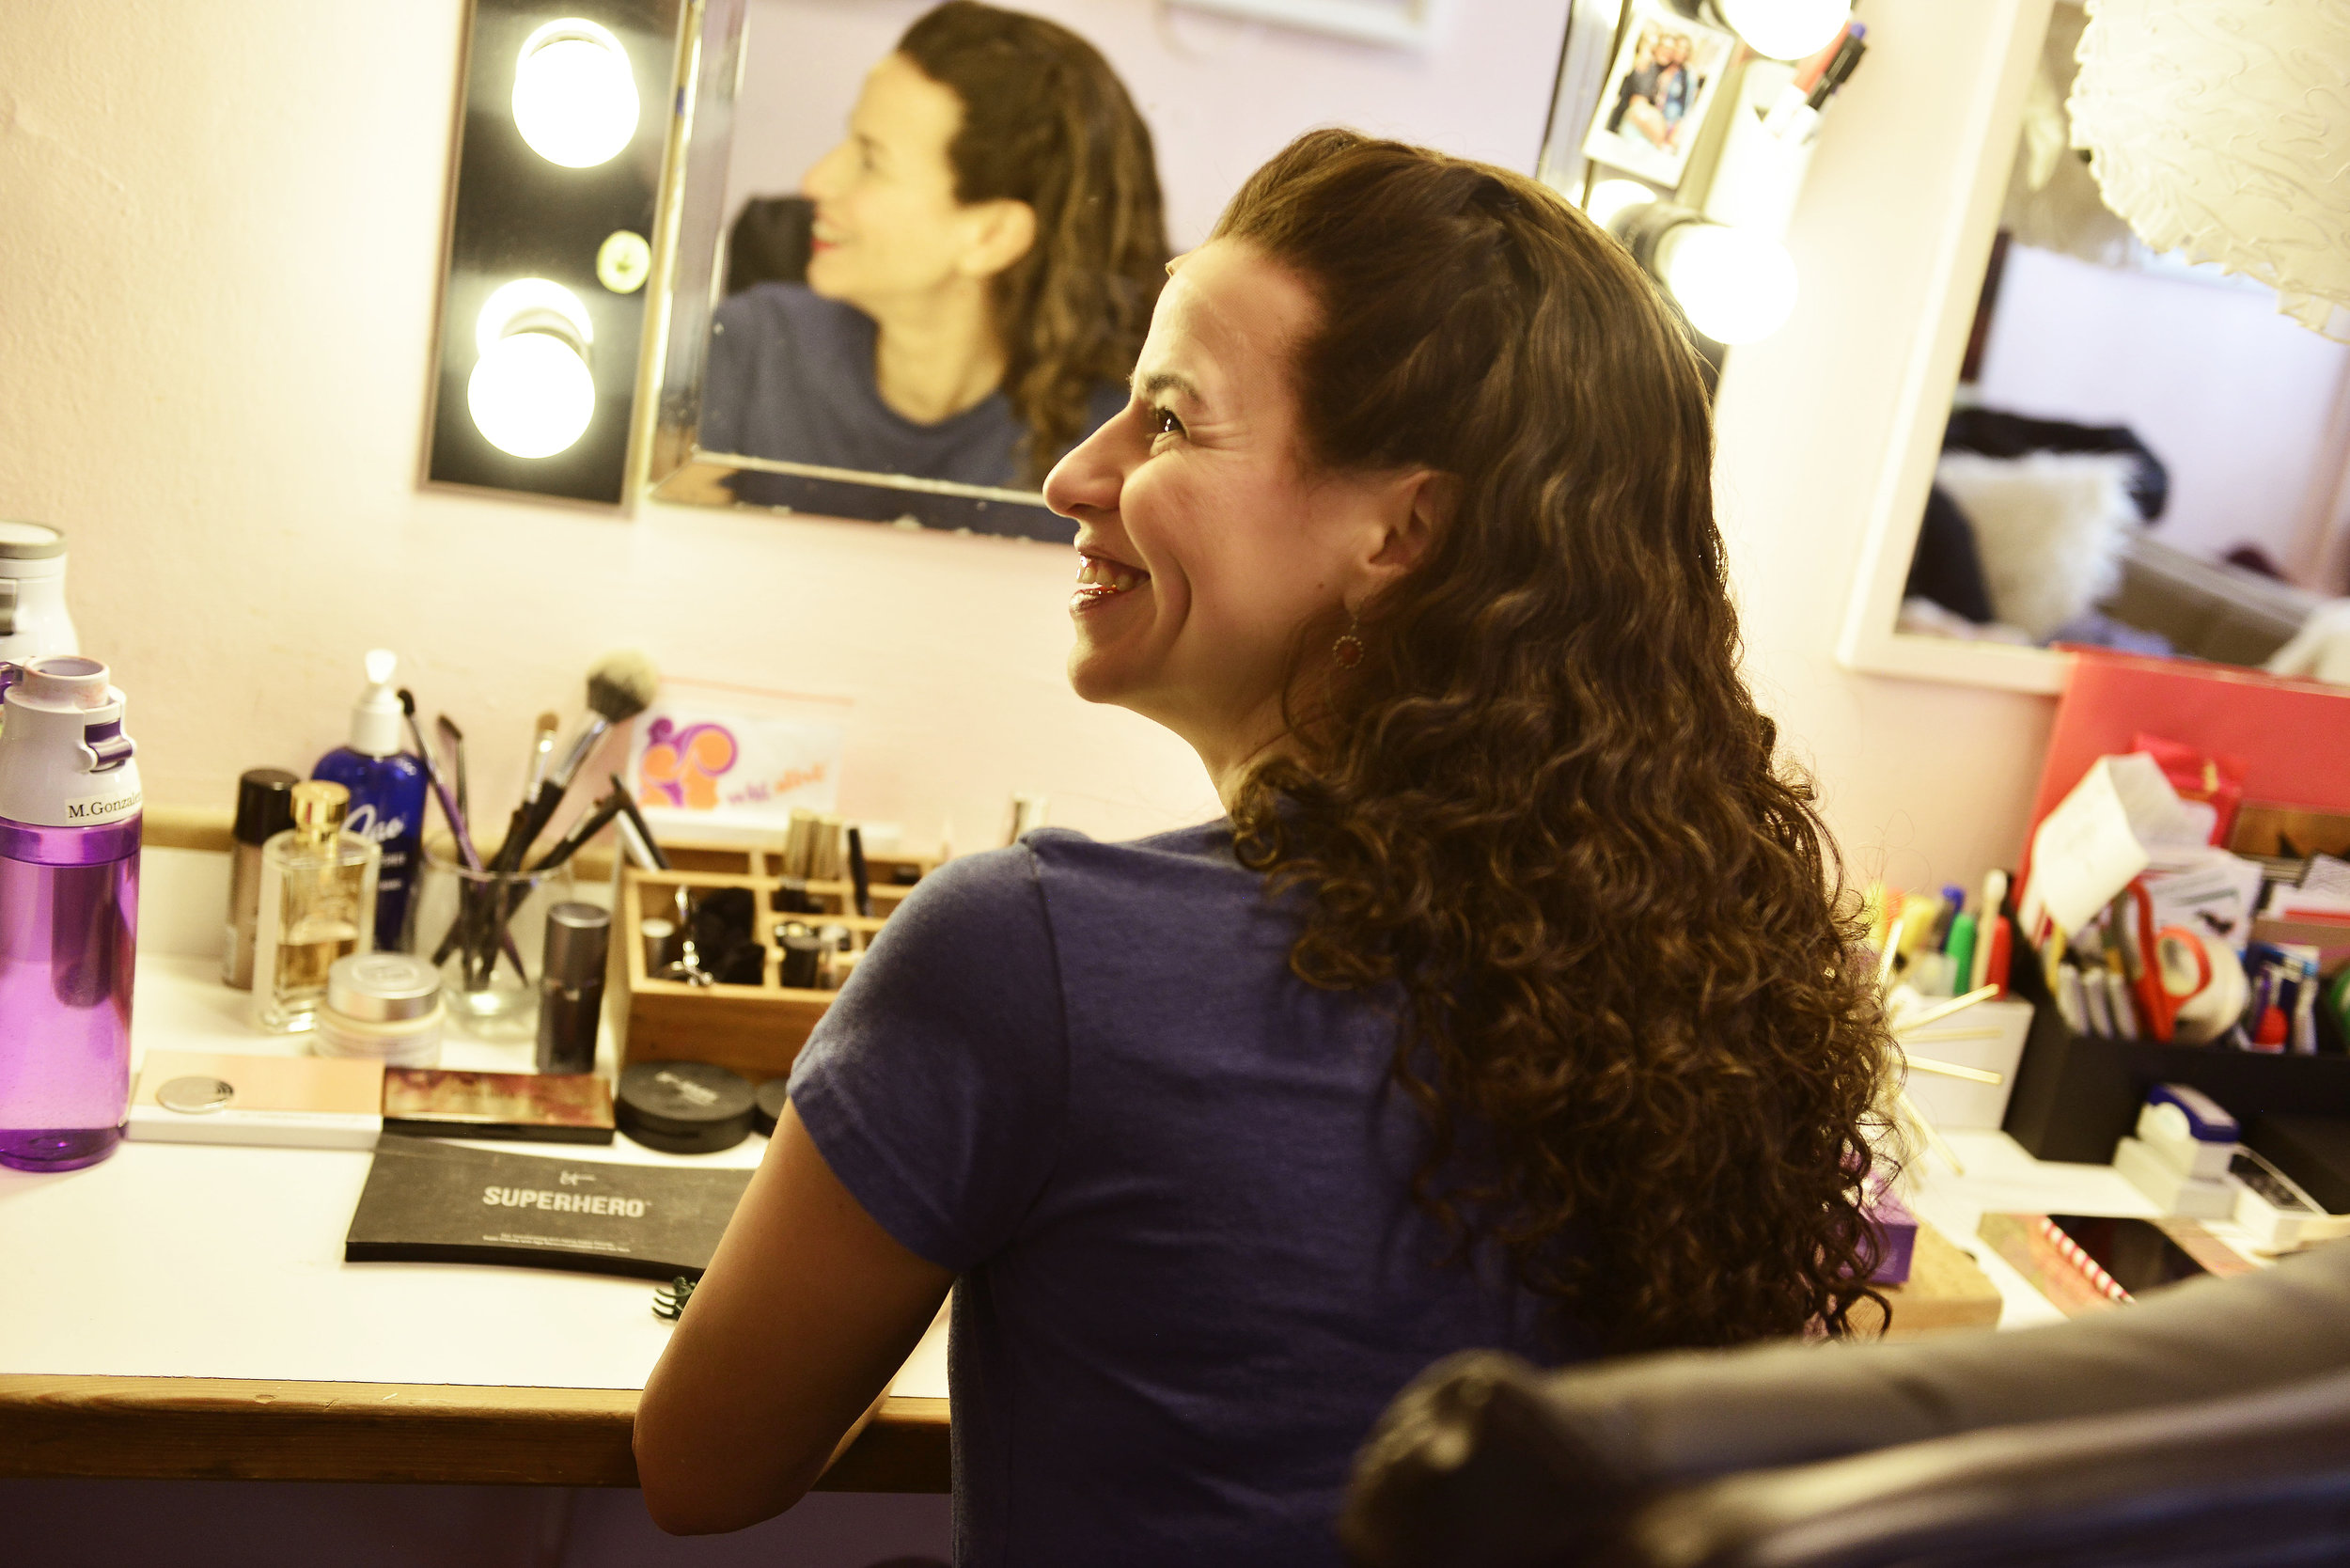 Mandy Gonzalez prepares for Hamilton / Photographed for The Dressing Room Project